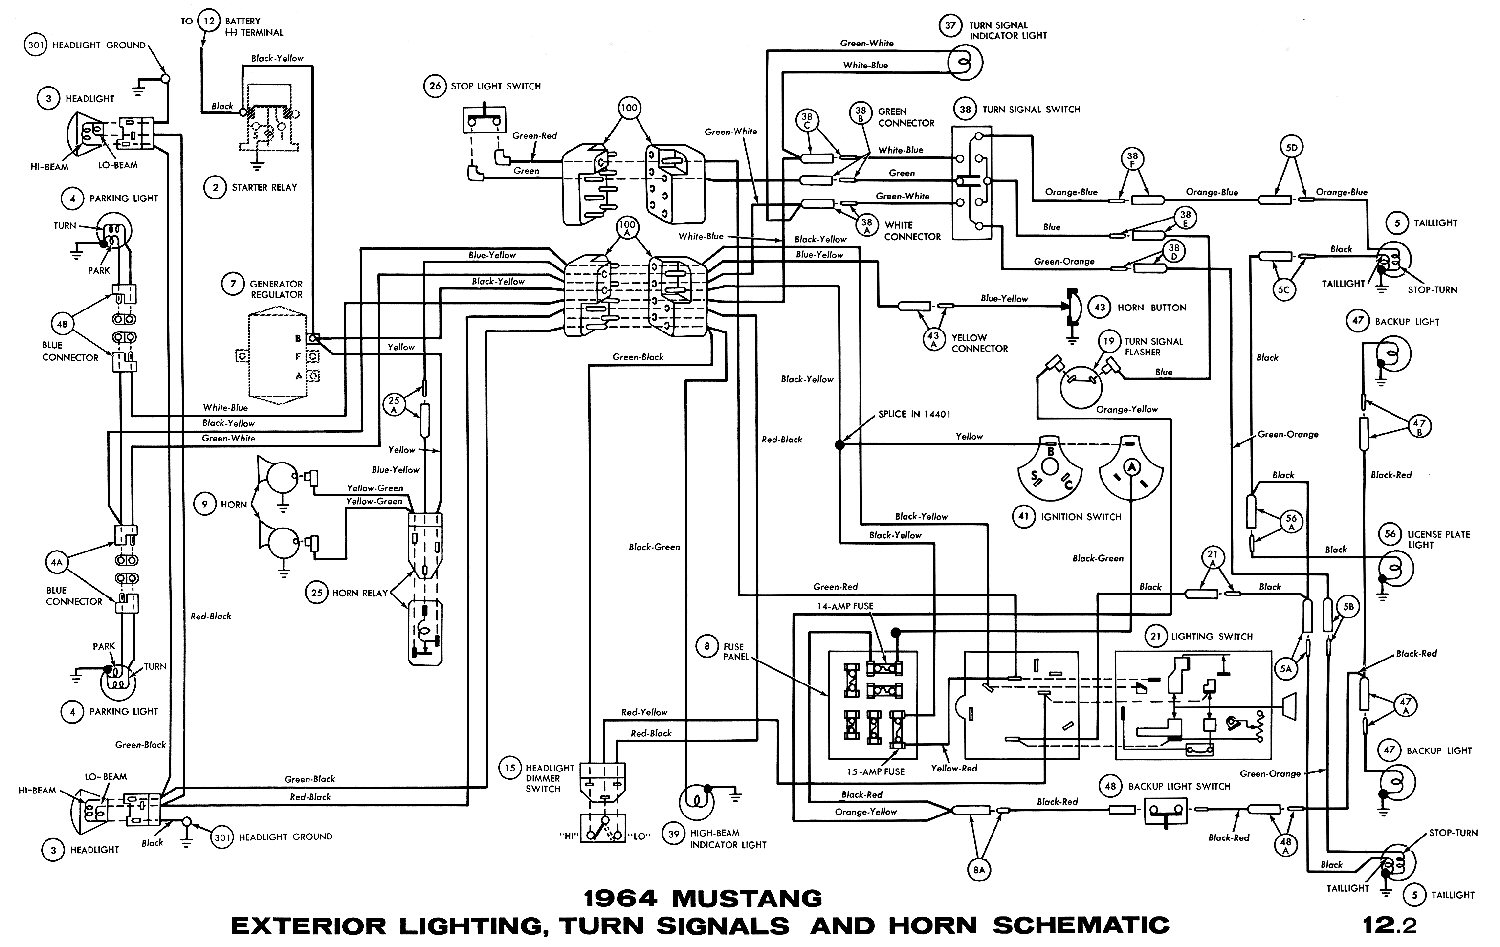 1964i 1964 mustang wiring diagrams average joe restoration 93 mustang turn signal wiring diagram at love-stories.co